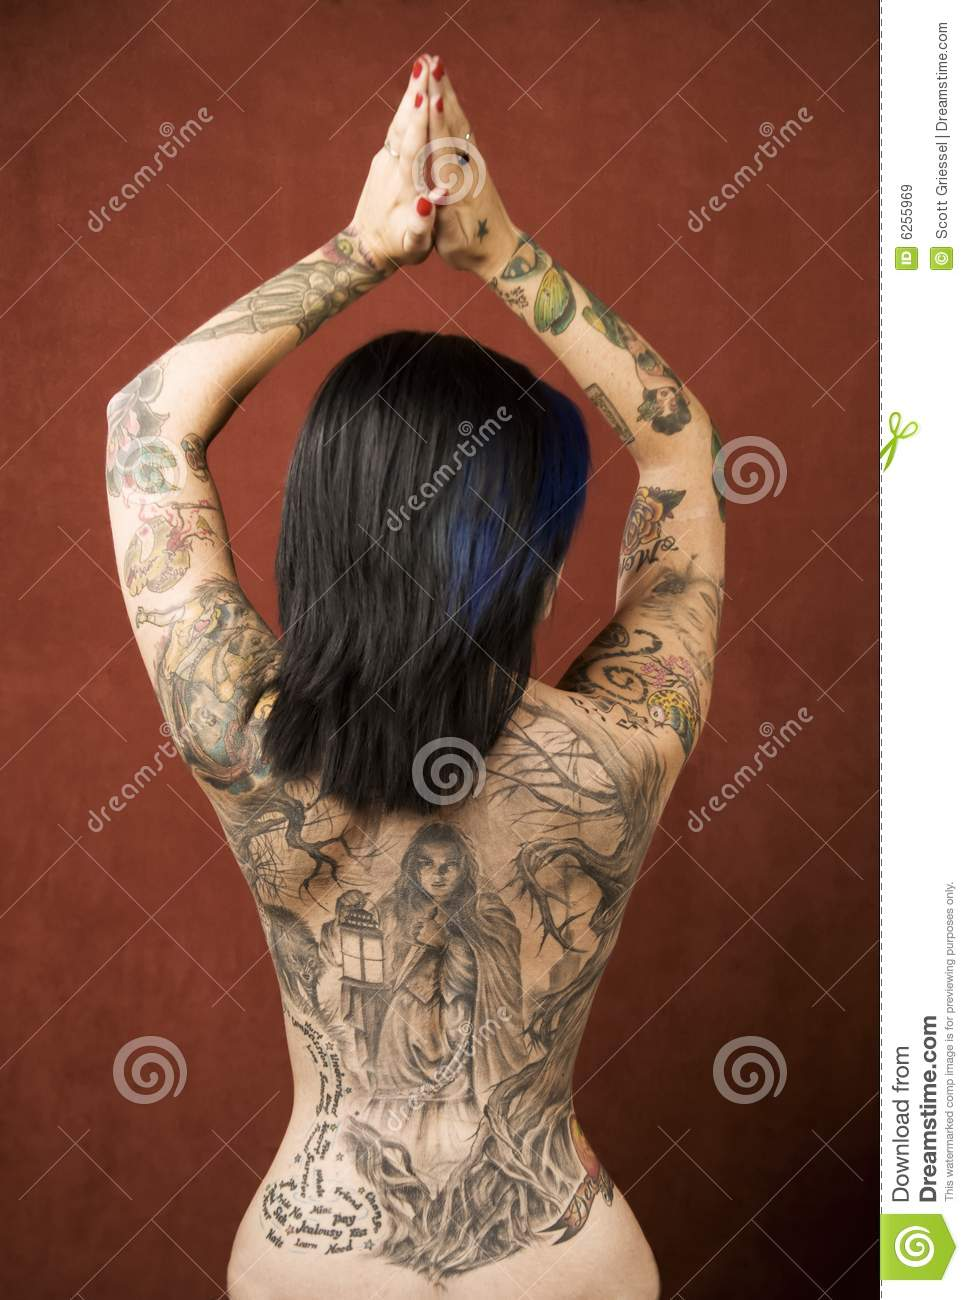 Nude women with tattoos